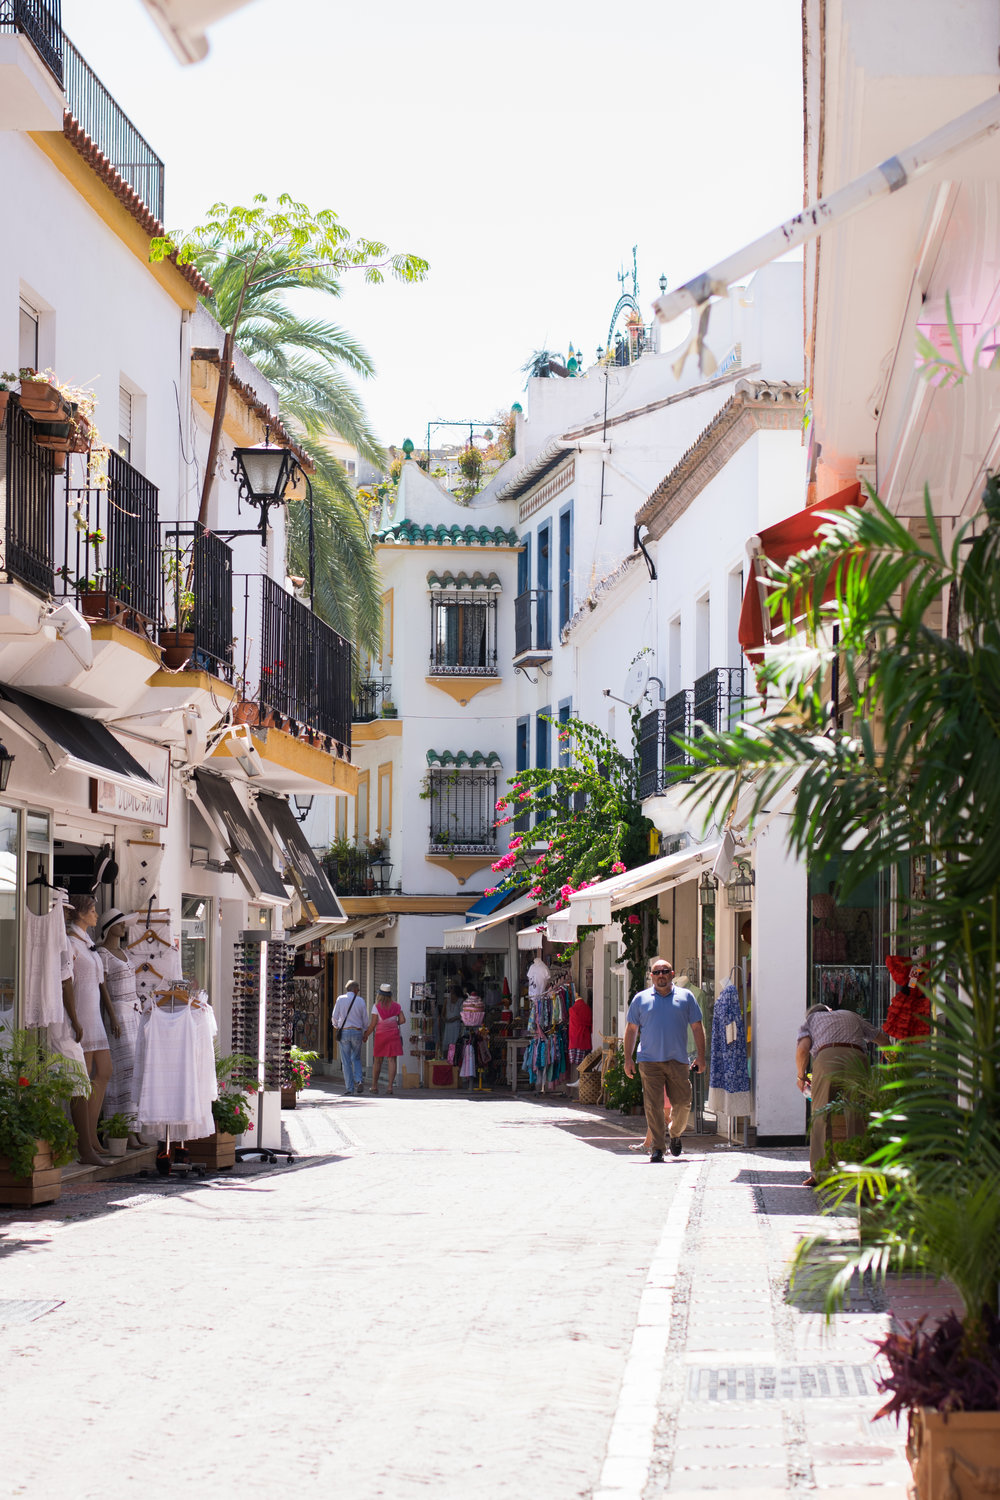 marbella old town, things to see in marbella costa del sol